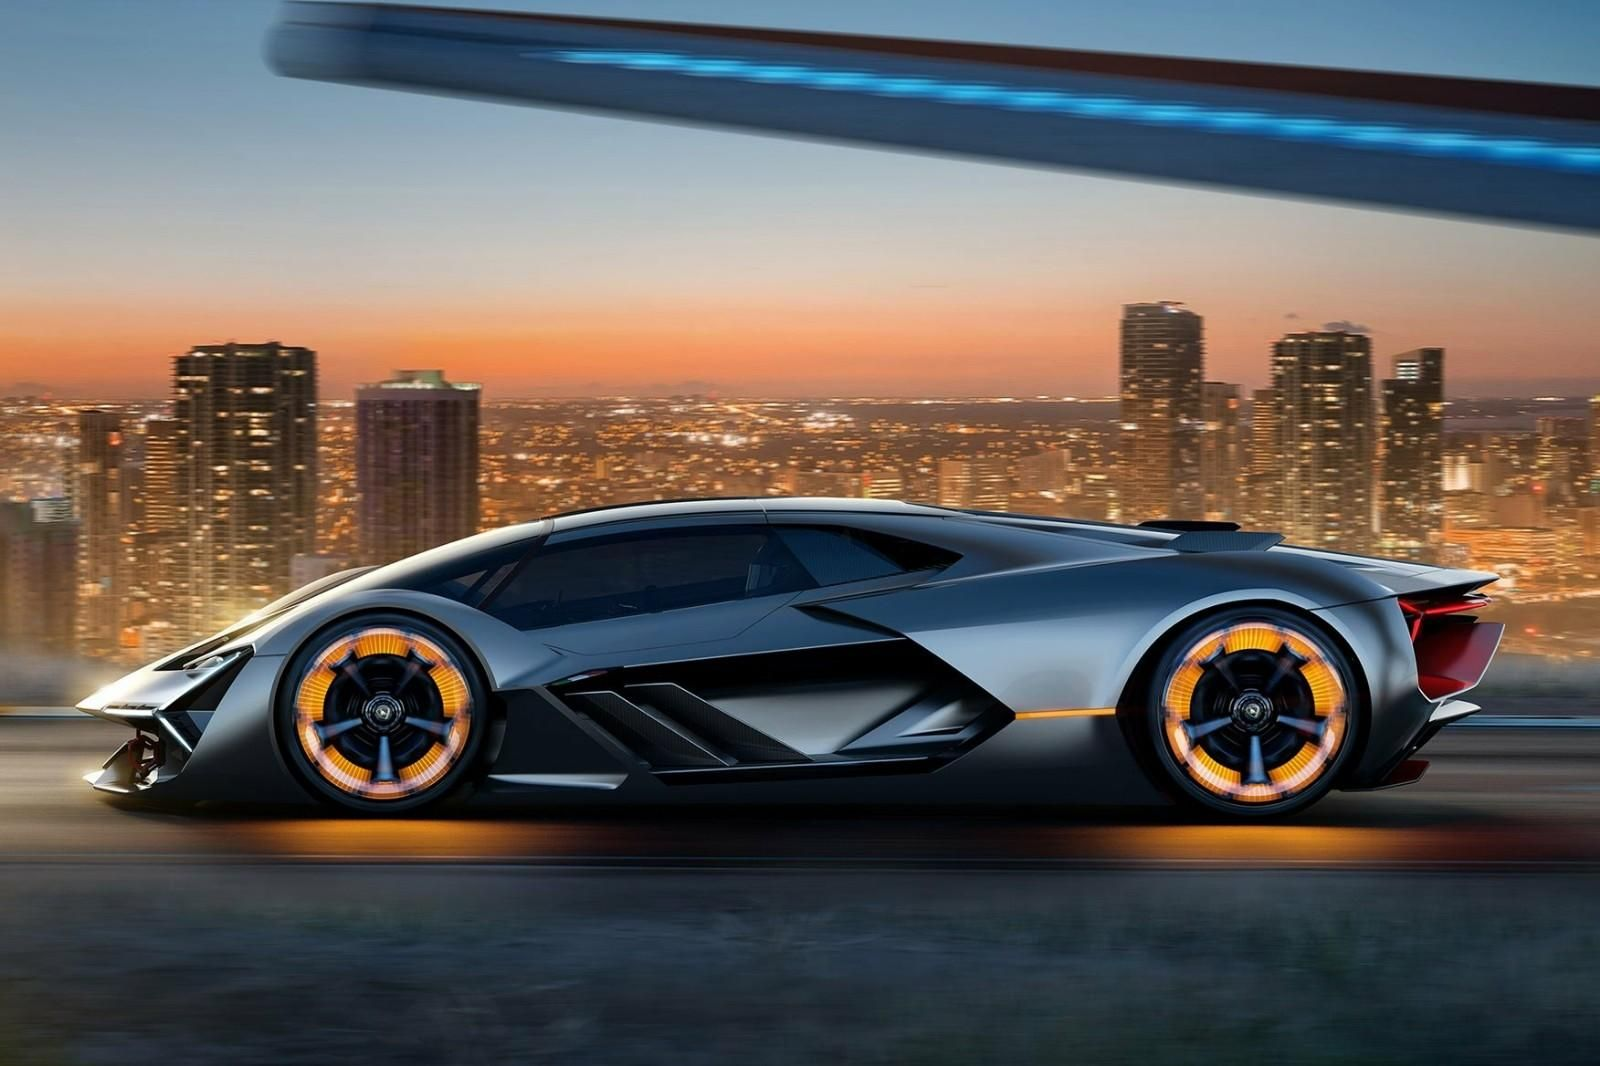 Lamborghini In 2020 Super Sport Cars Lamborghini Cars Sports Car